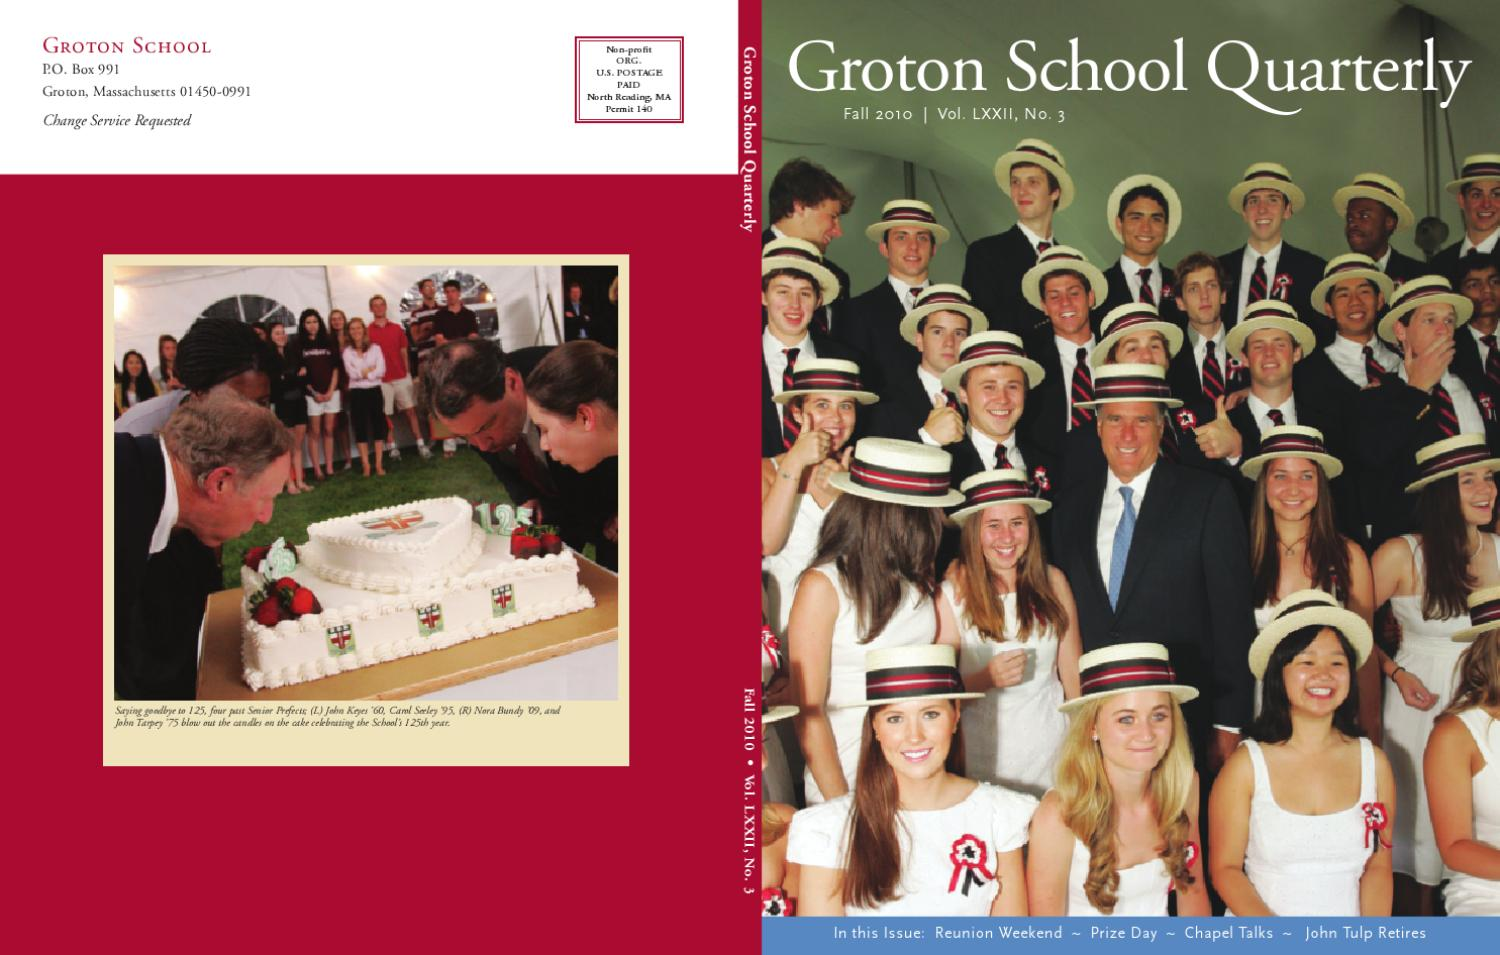 Groton School Quarterly Fall 2010 By Groton School Issuu